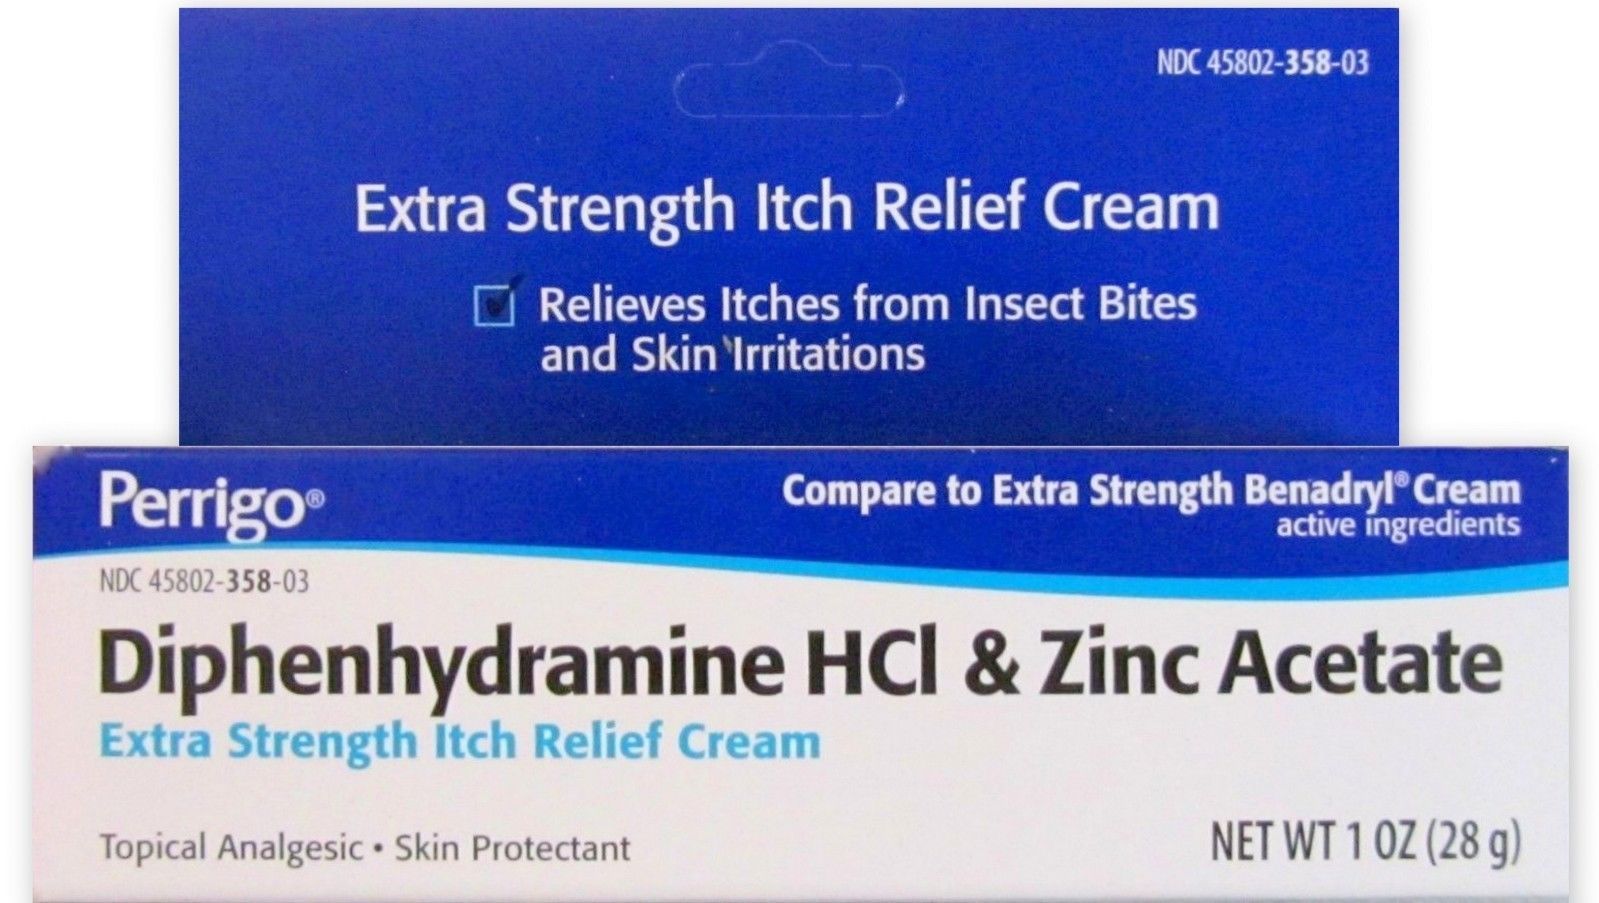 Perrigo Diphenhydramine Hci & Zinc Acetate Extra Strength Itch Relief Cream 1oz